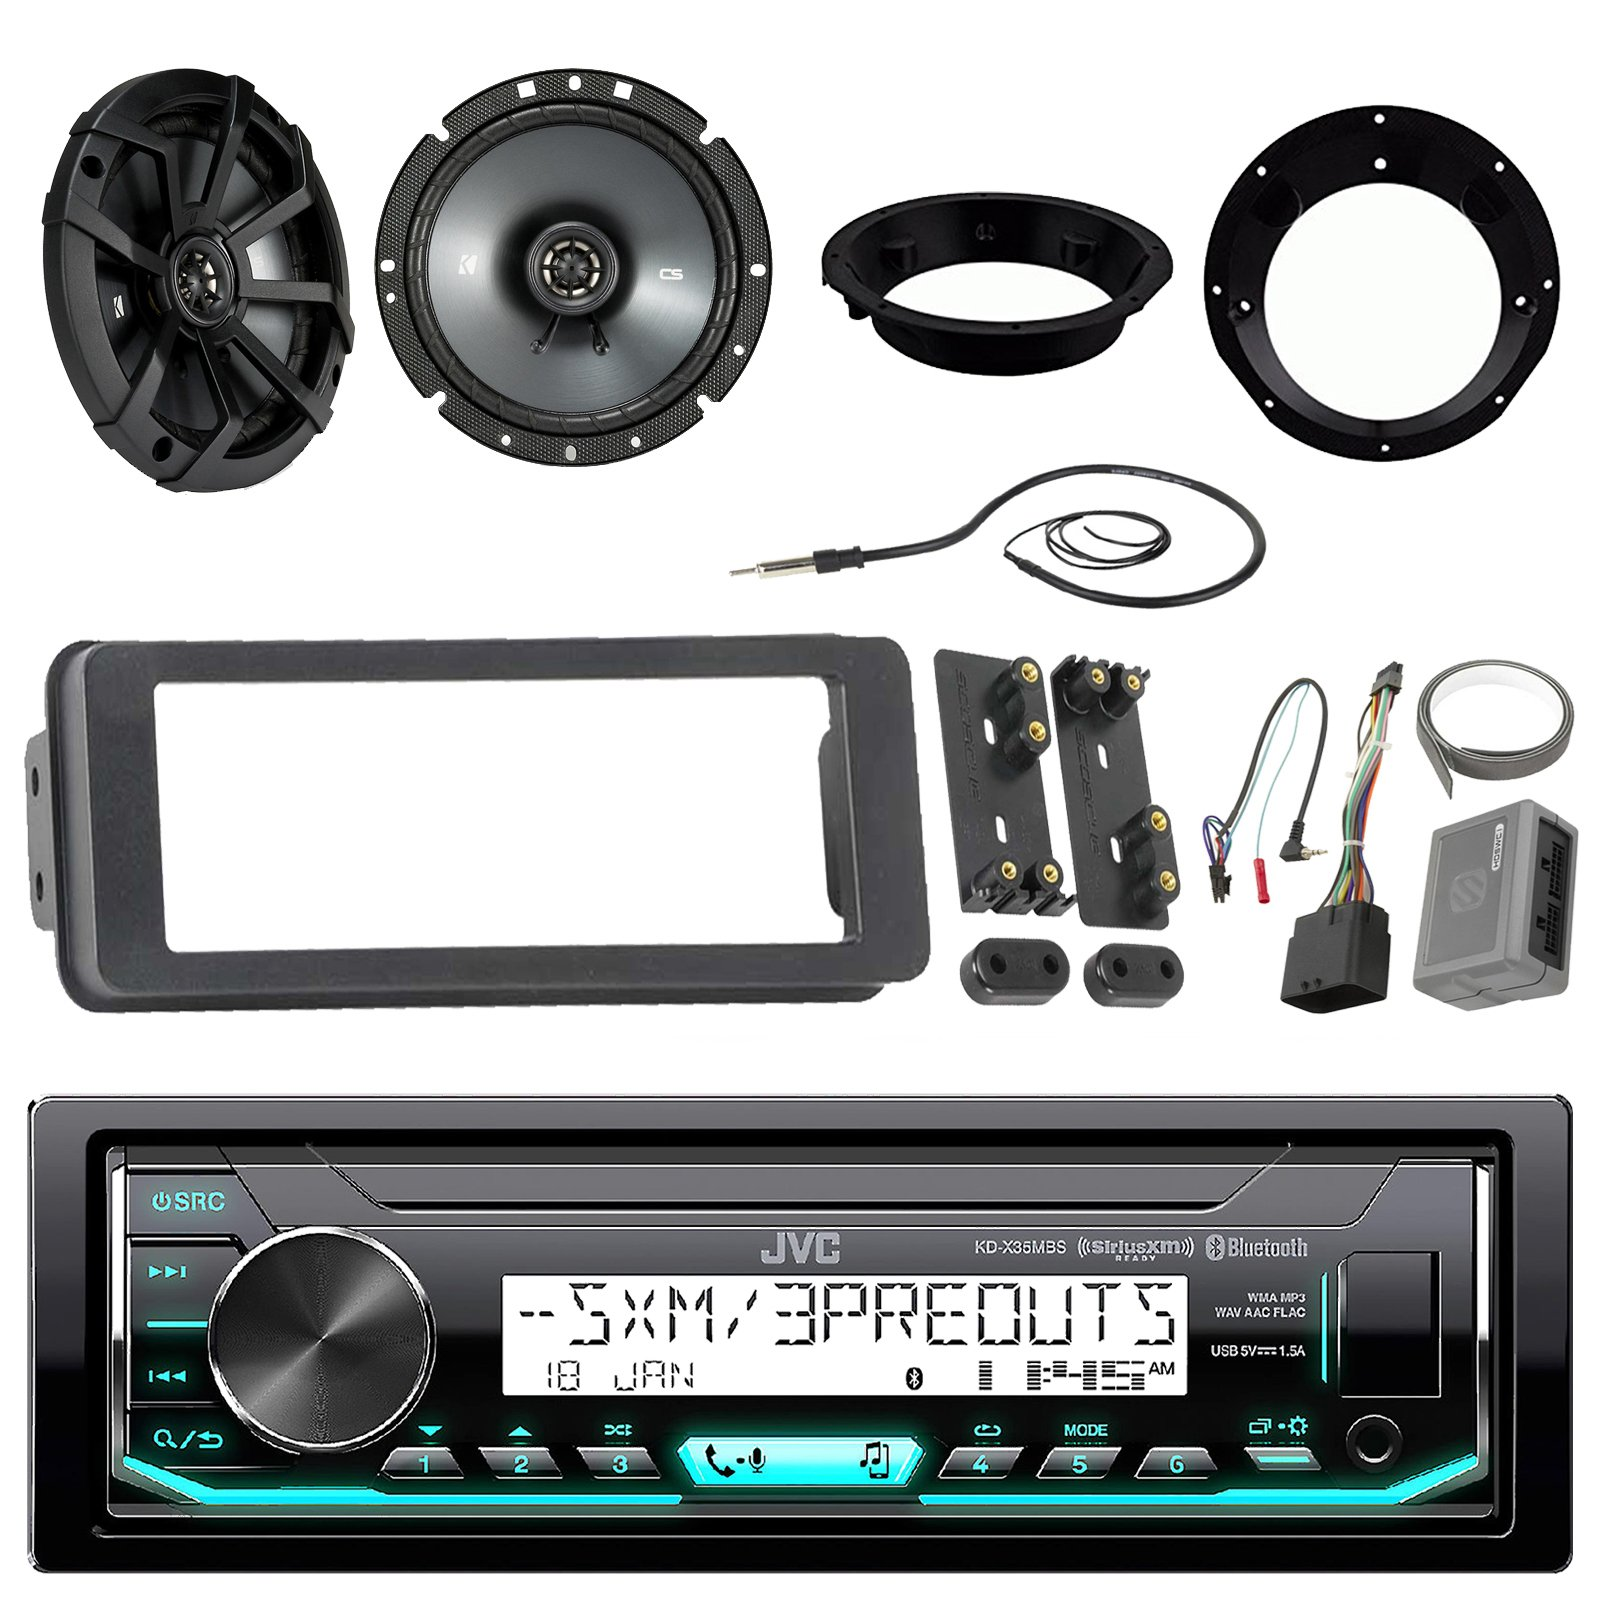 JVC KDX35MBS Marine Radio Stereo Receiver Bundle With 2 X Kicker 43CSC674 6-3/4'' CS-Series Black Car Speakers, Scosche Adapter Dash Kit With Handle Bar Control Module + Enrock Wire Antenna